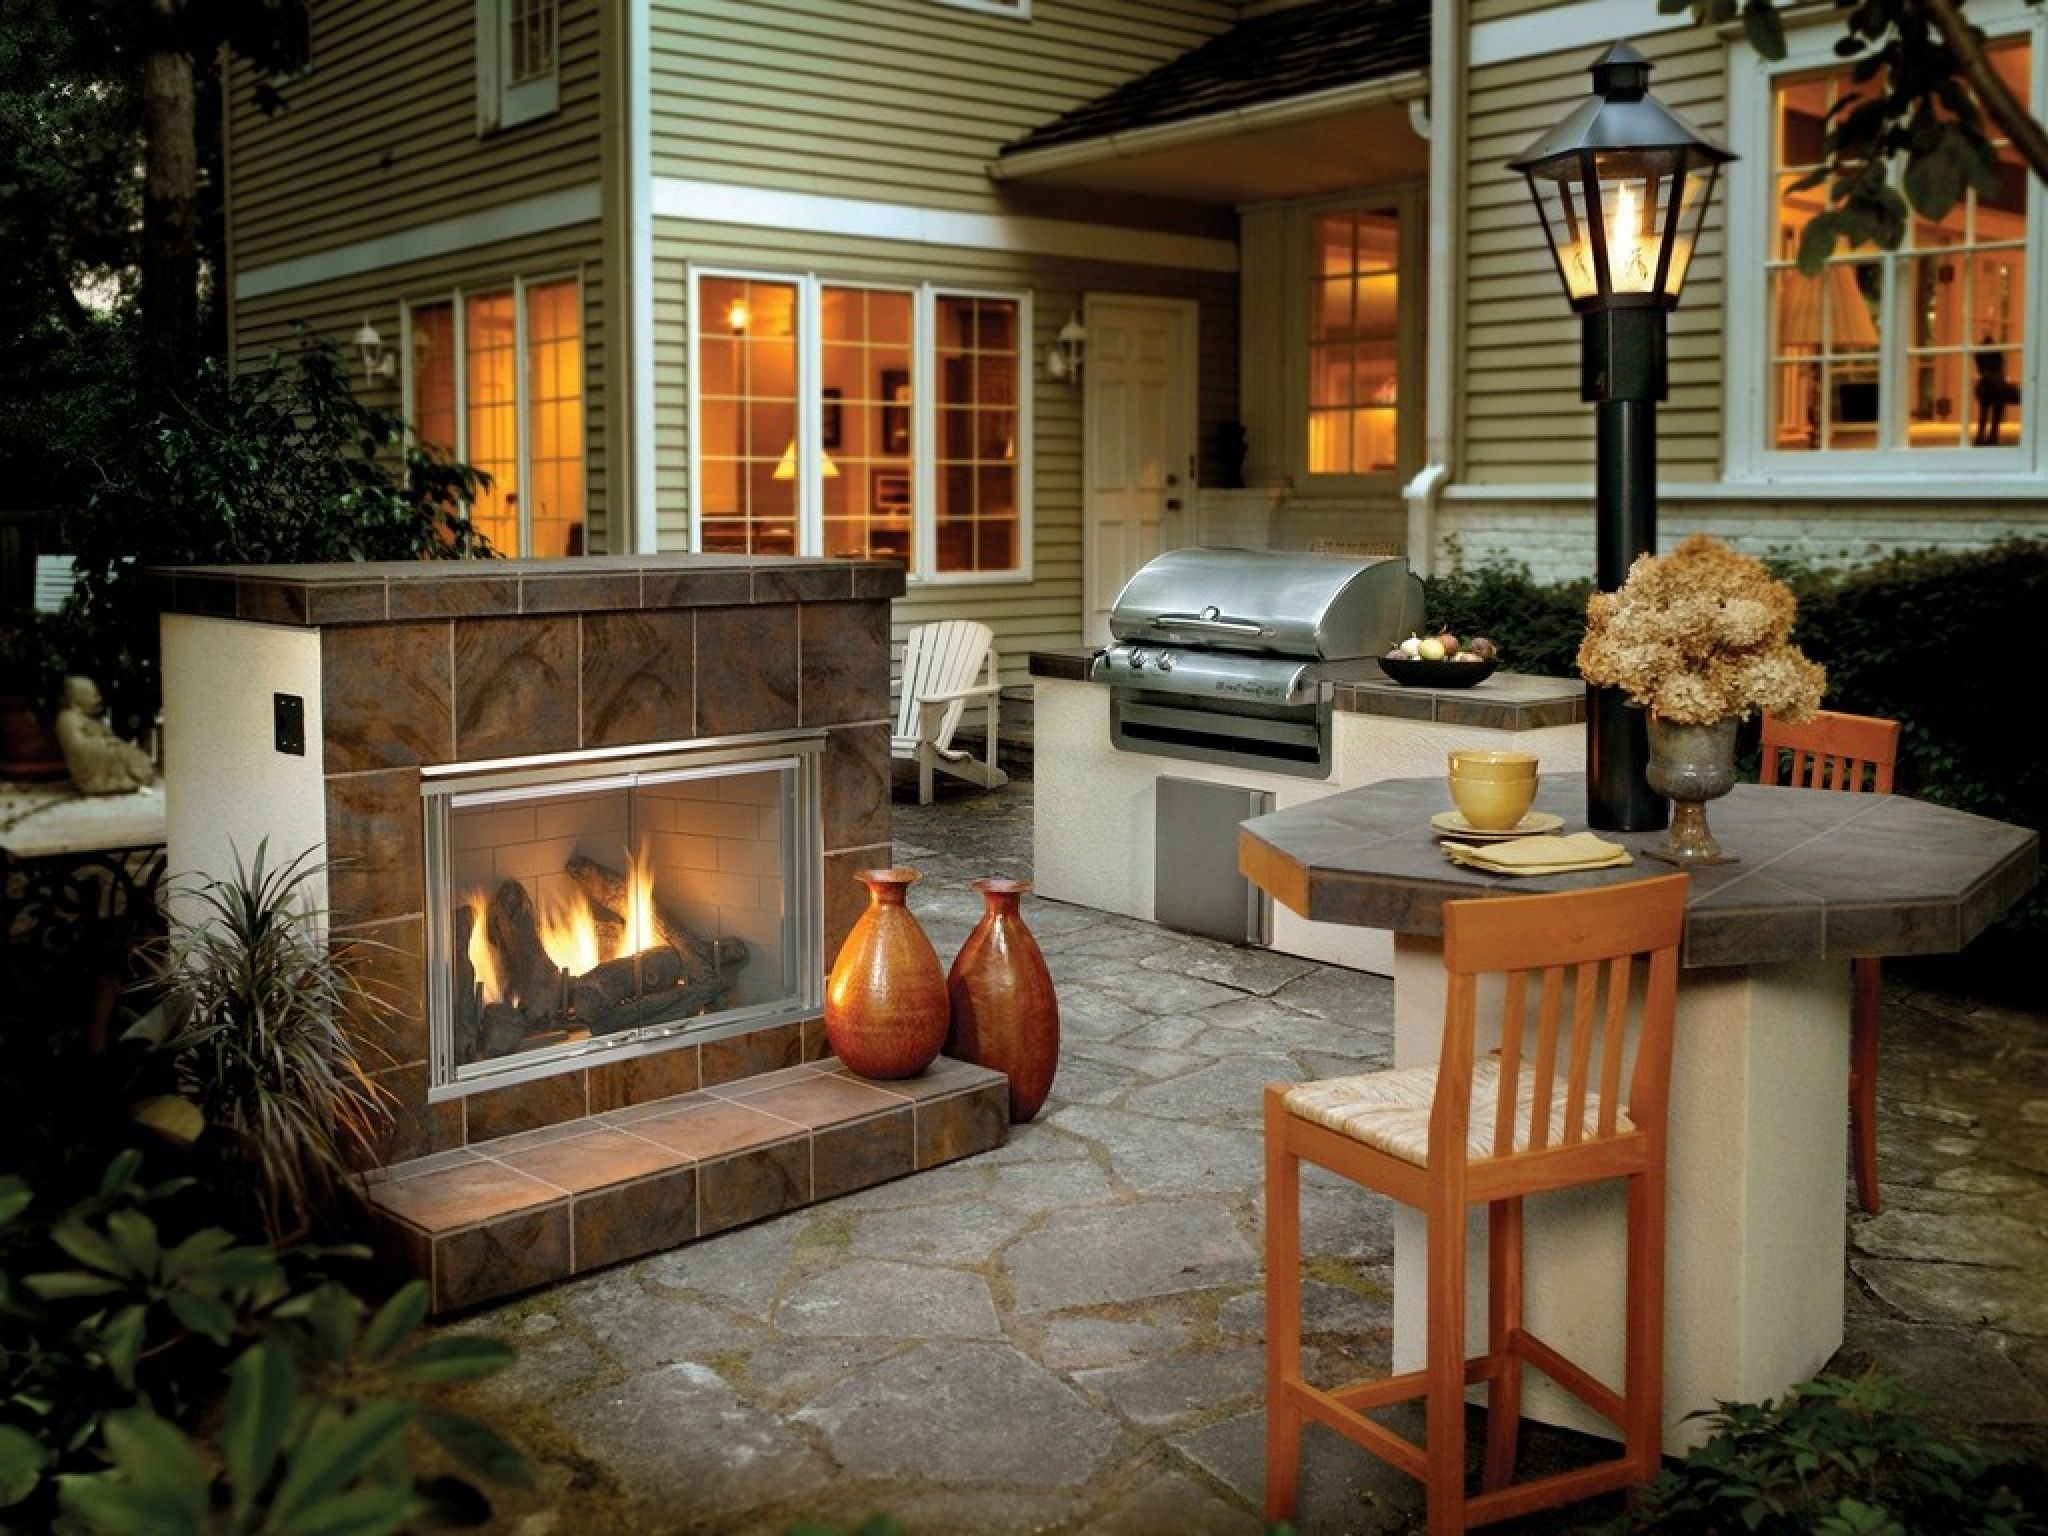 outdoor fireplace kits lowes. Corner Outdoor Fireplace Kits - Lowes Paint Colors Interior Check More At Http://